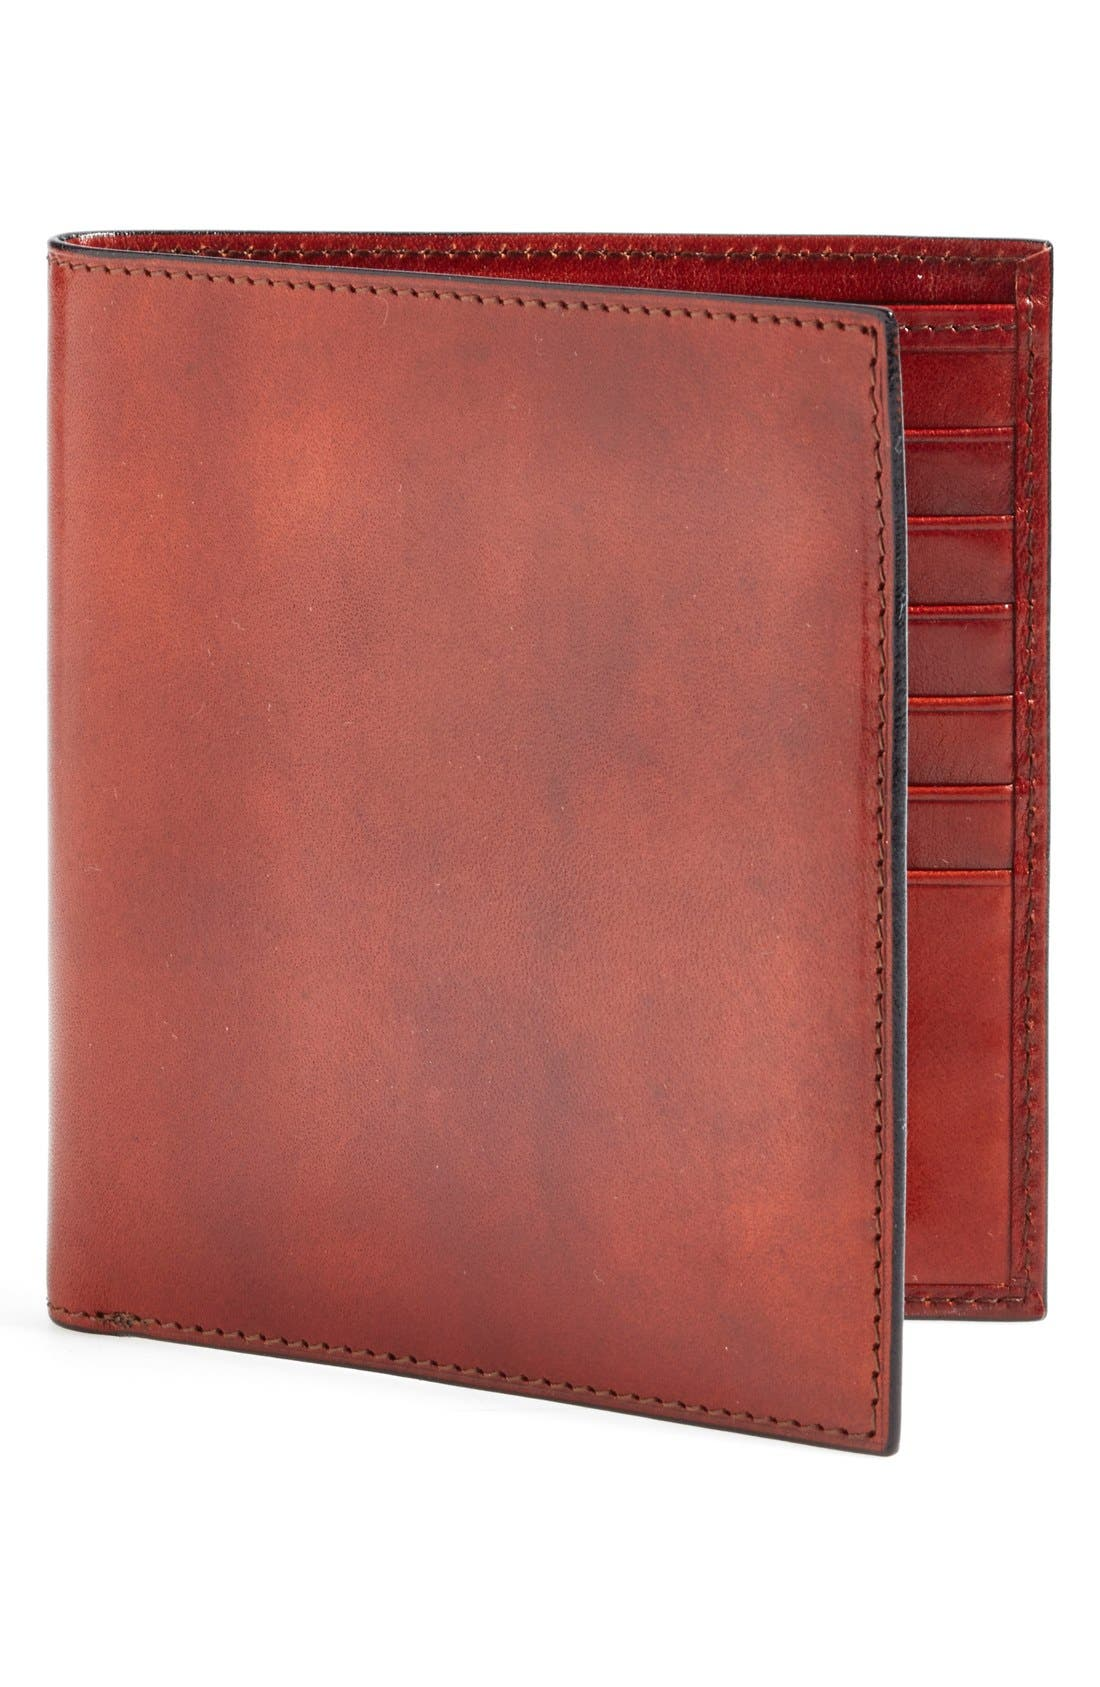 Alternate Image 1 Selected - Bosca 'Old Leather' Credit Wallet